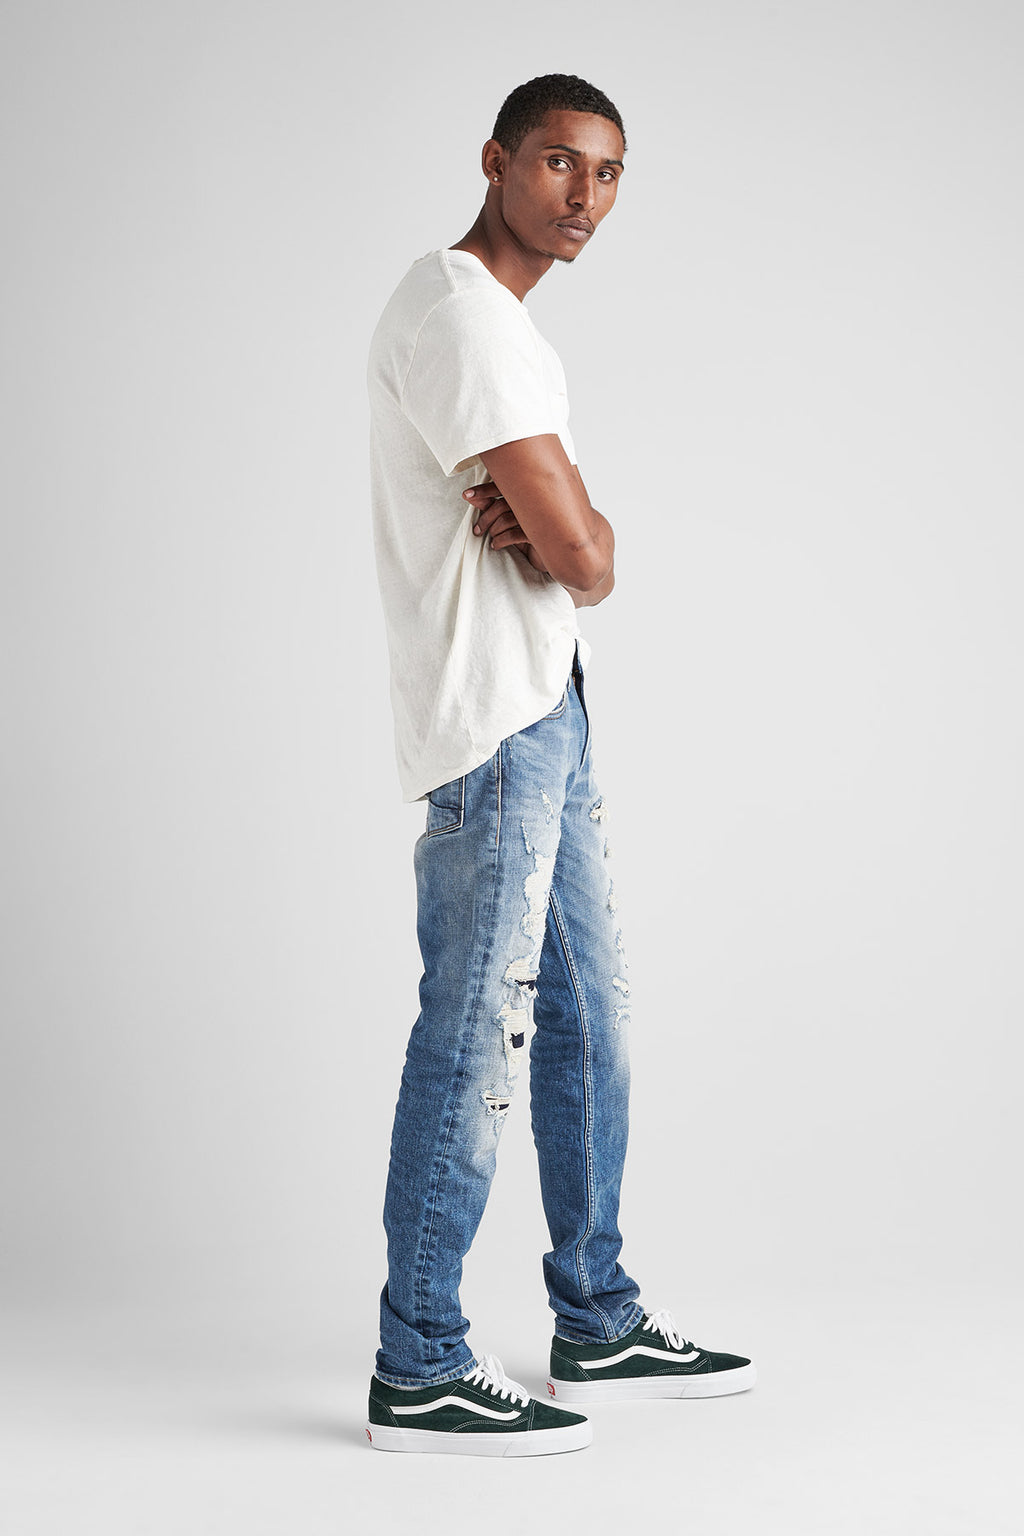 AXL SKINNY JEAN - KINGS CANYON - Image 2